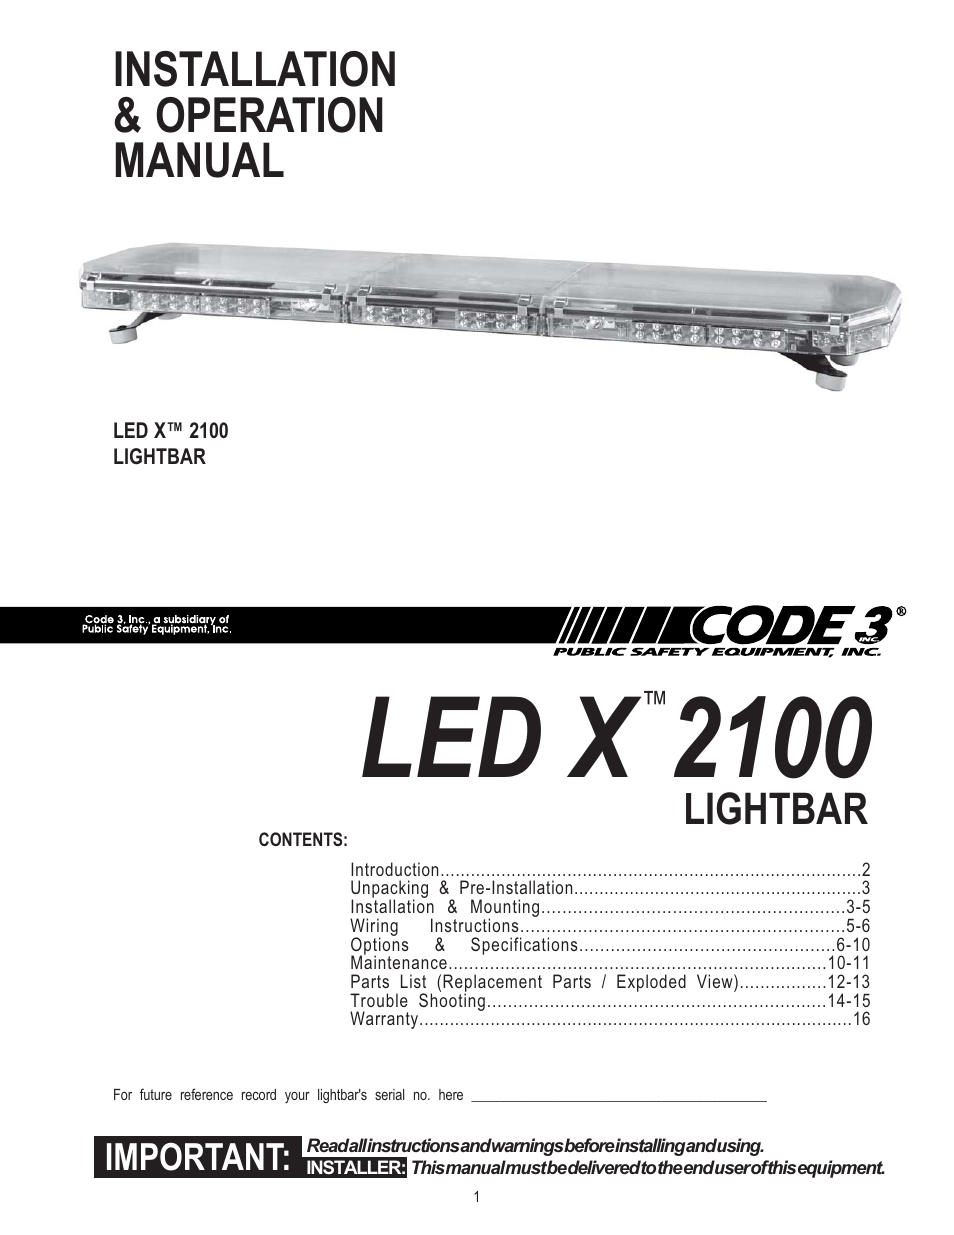 Code 3 Light Bar Wiring Diagram Opinions About Whelen 9m Wire Led X 2100 Lightbar 41 Images Diagrams 21tr Defender